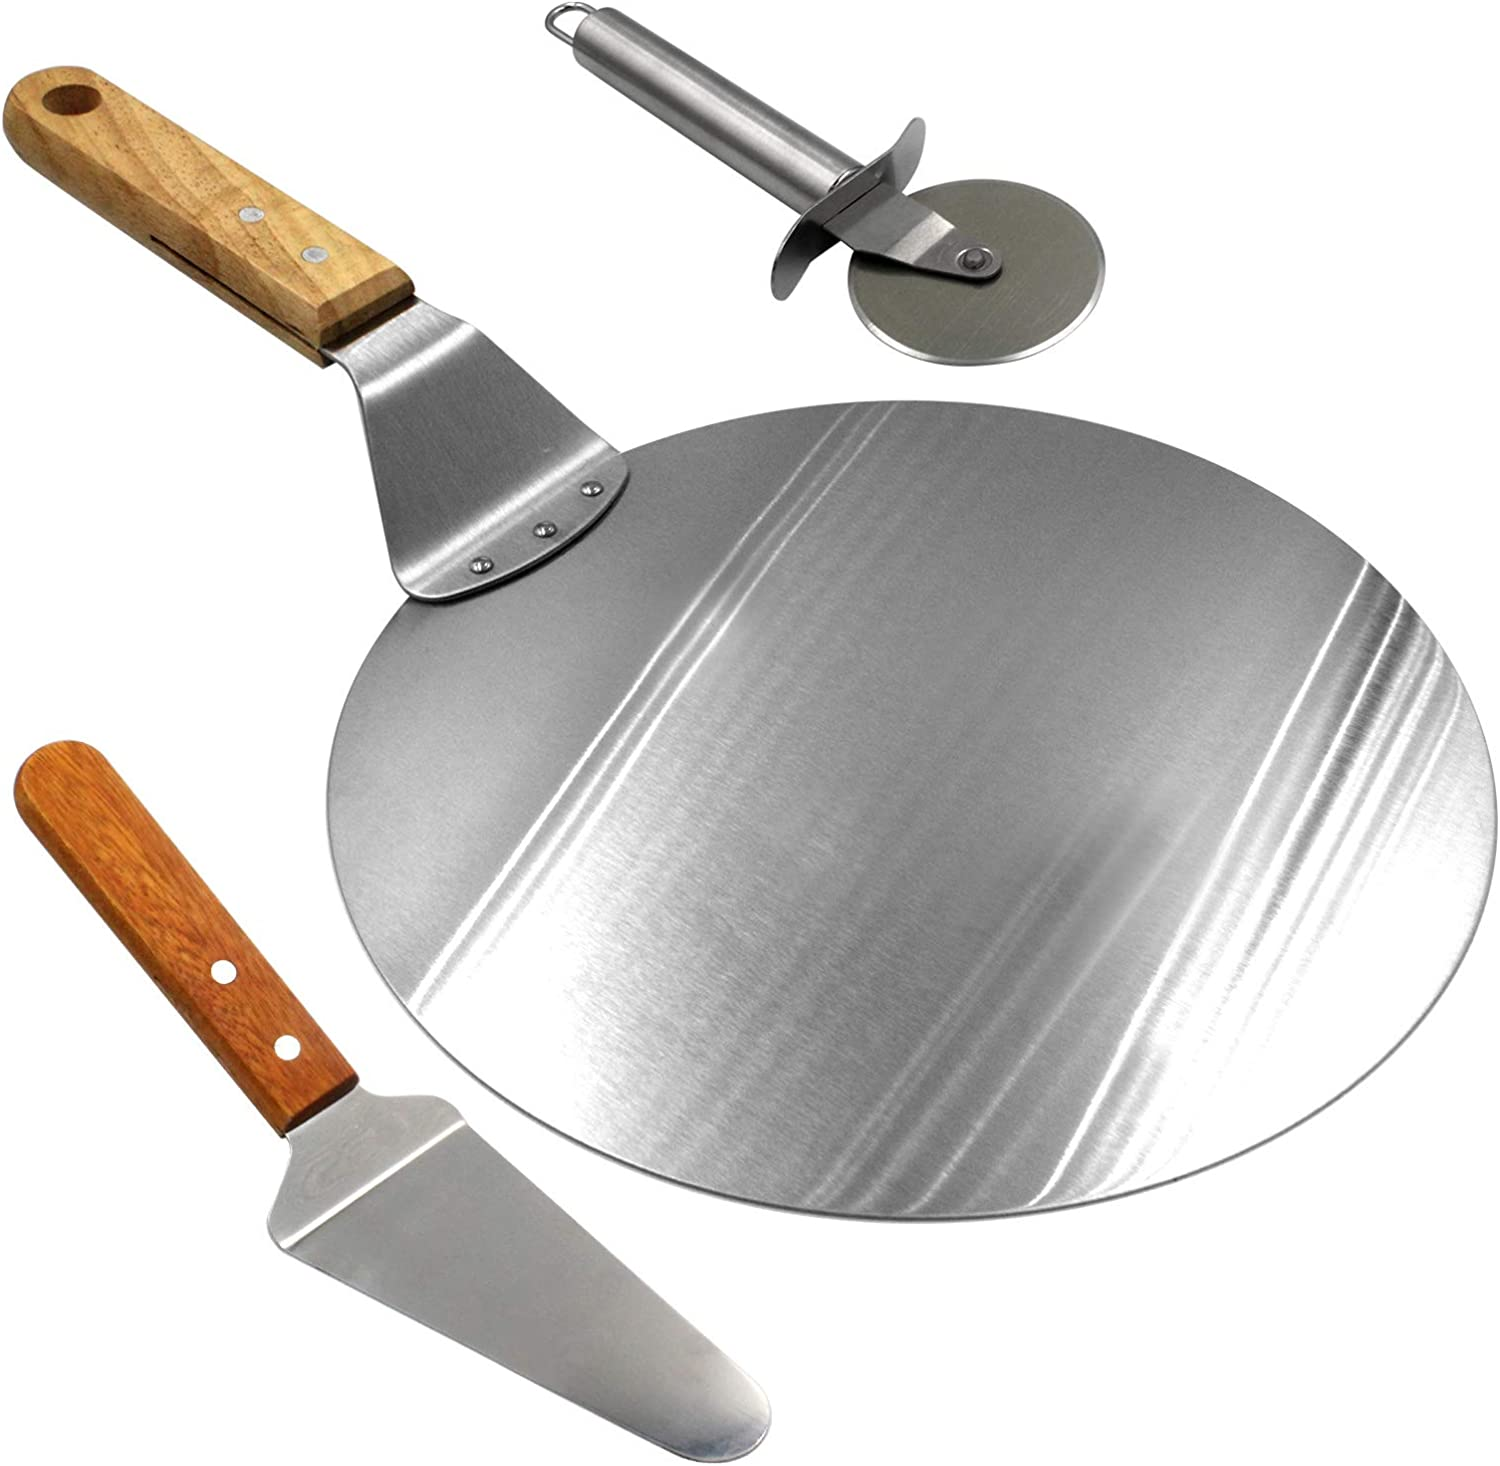 Stainless Steel Pizza Peel Bakers Round Paddle Wooden Baking Tray Handle new